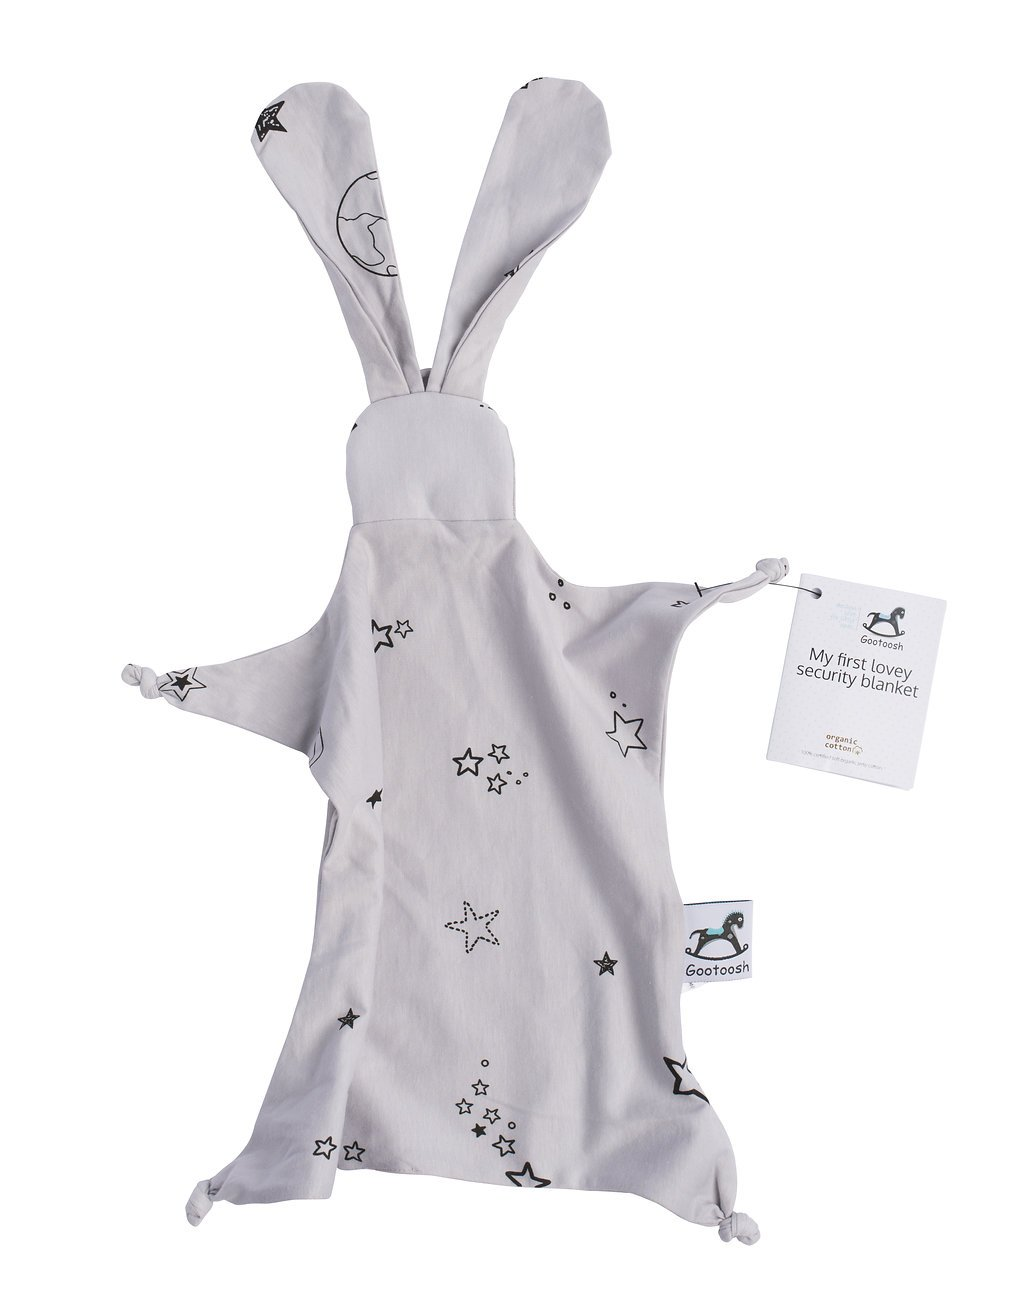 Bunny Security Blanket Lovey Blanket Made from Organic Cotton with Stars Print or Origami,Baby Gift Pink Baby Shower